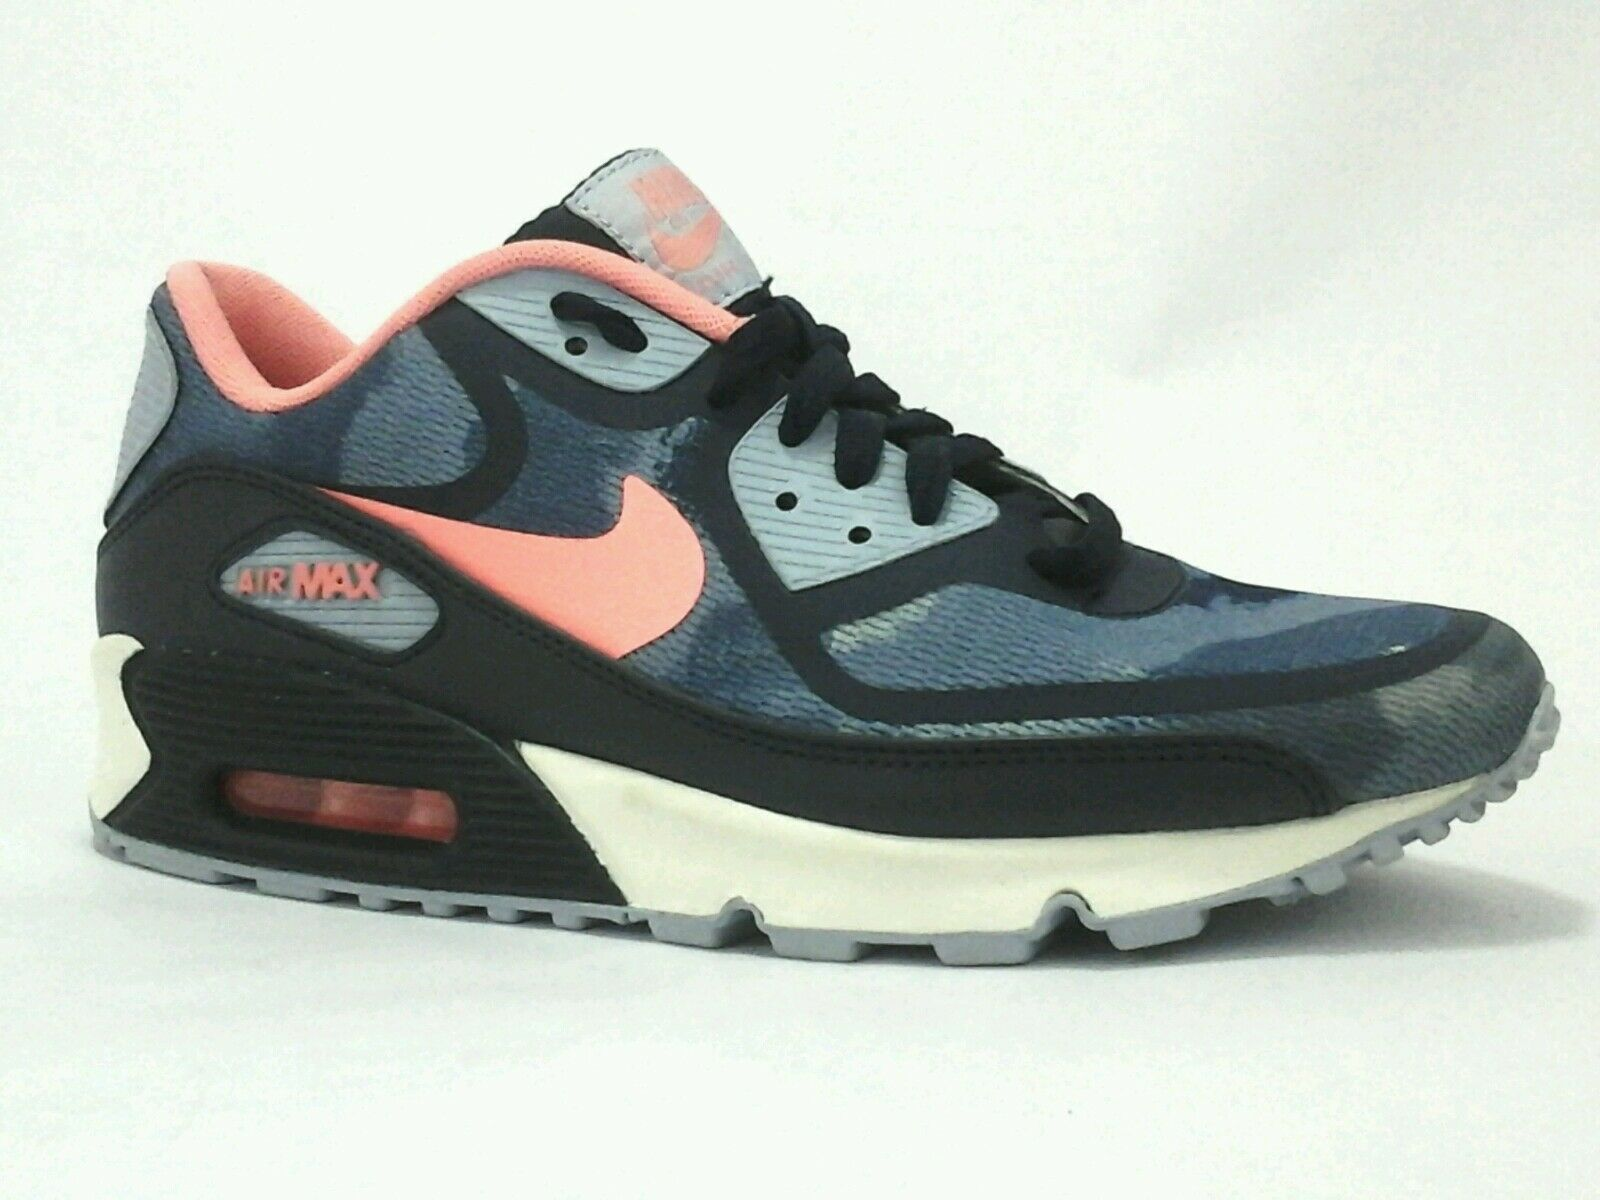 01ffd63cd Details about NIKE AIR MAX Camo Shoes Rare Edition Blue Sneakers Women s US  8 M UK 5.5 EU 39